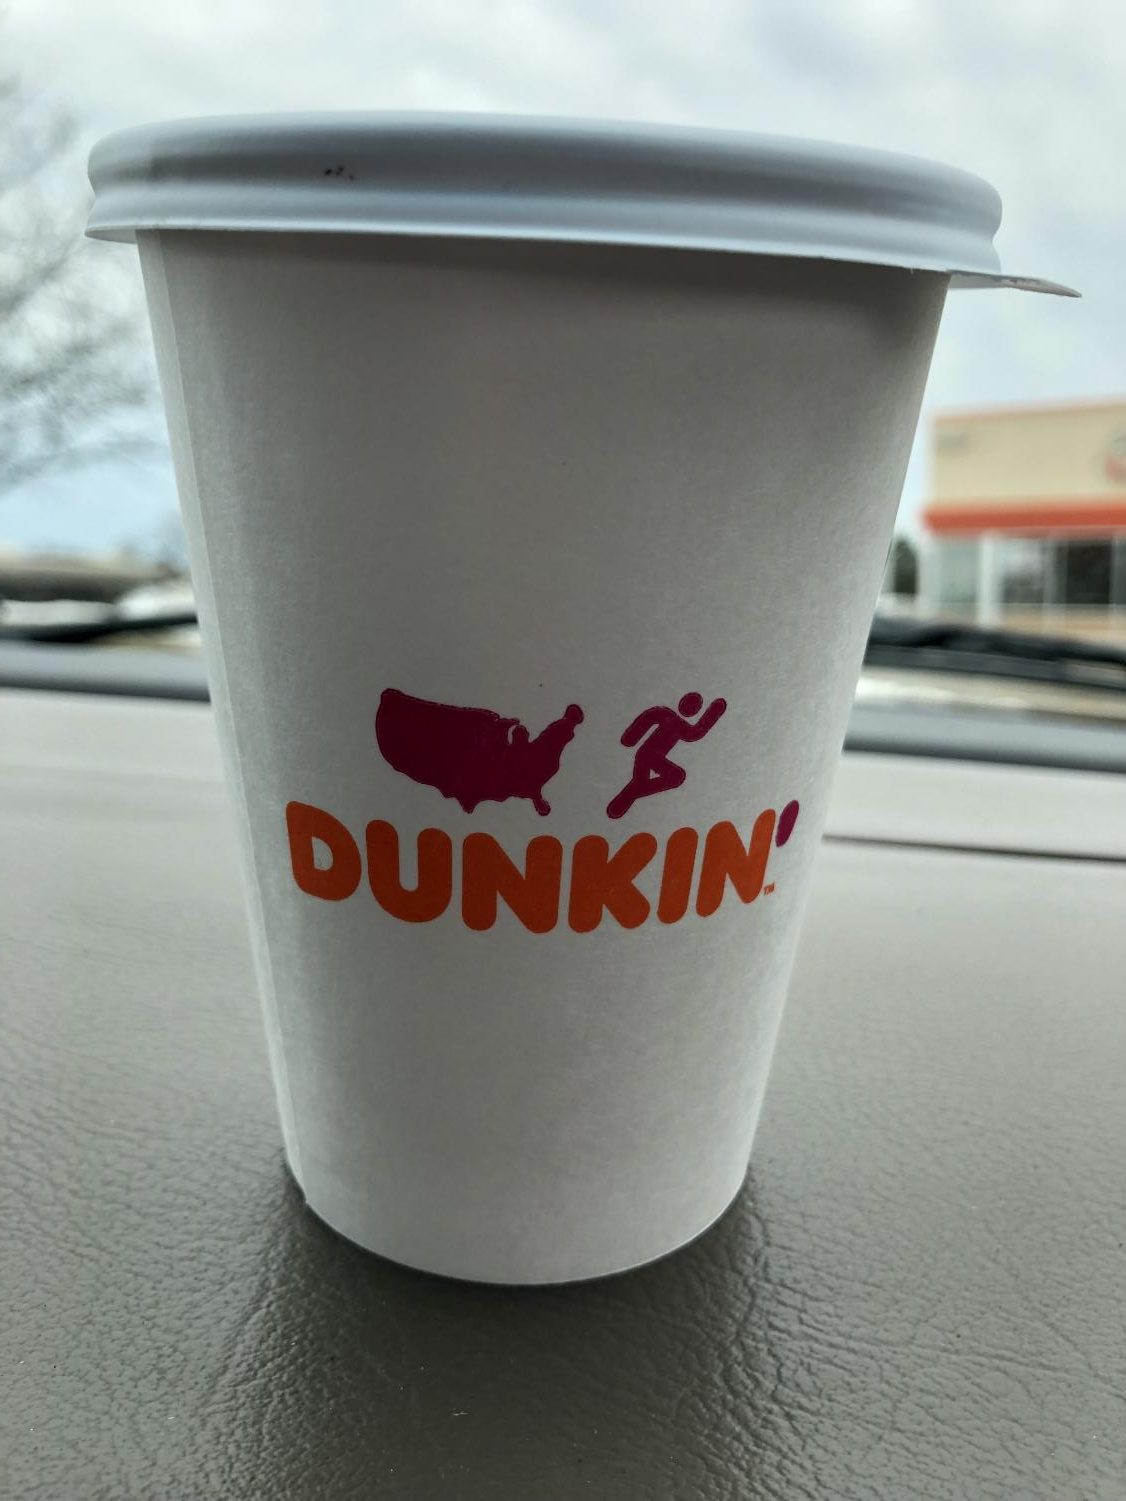 After tasting hot chocolate from three different places, the winner is Dunkin Donuts. Their hot chocolate has the best taste, quality, and price.